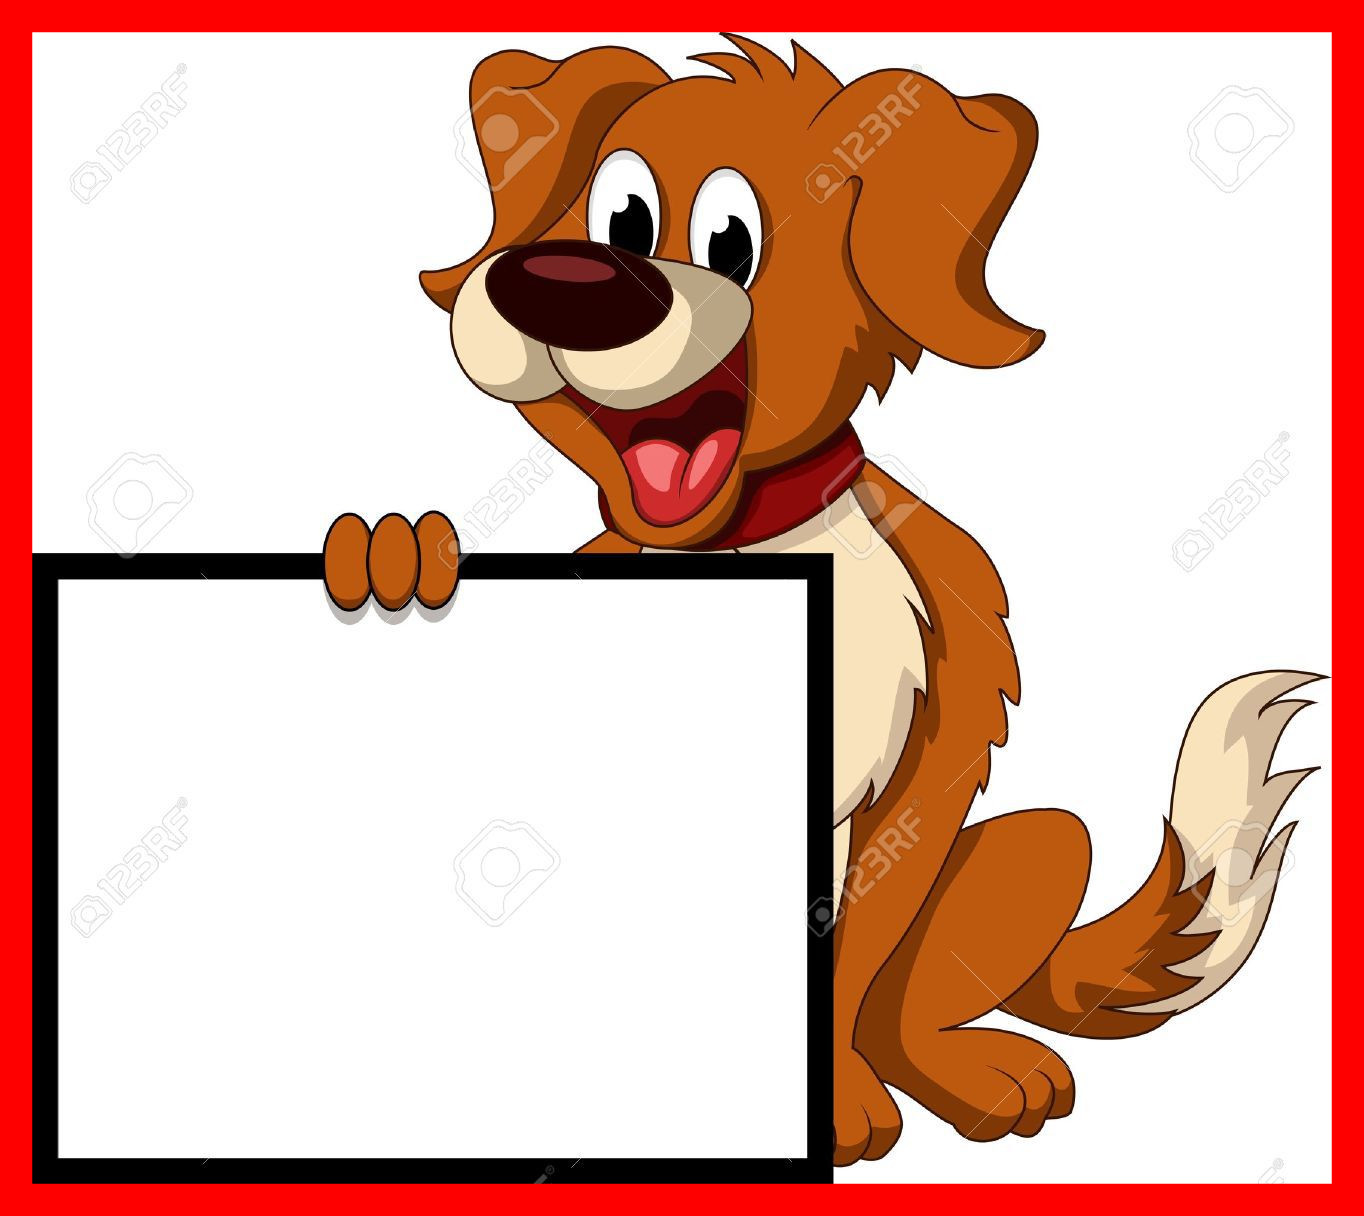 1364x1216 Unbelievable Royalty Rf Clipart Illustration Of A Cute Dog